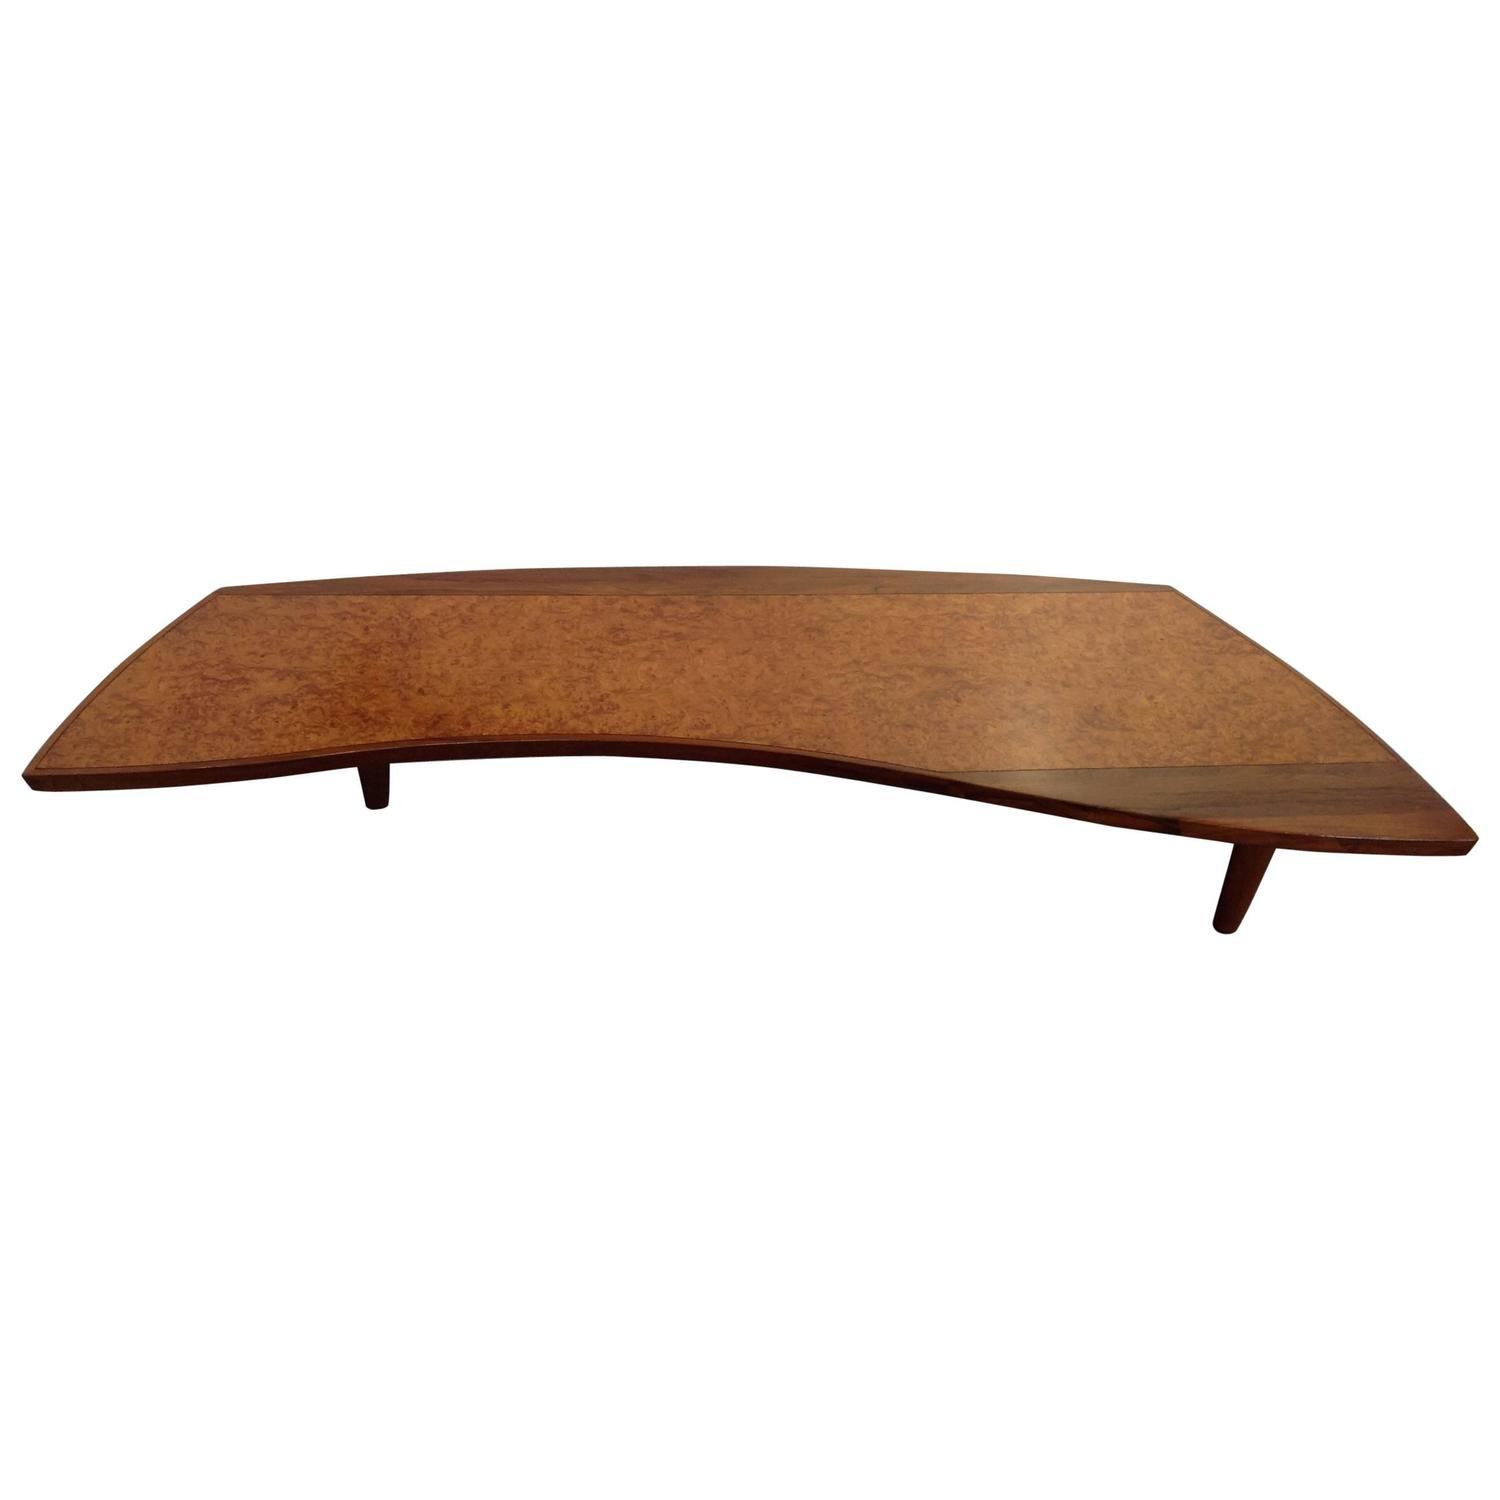 George Nakashima Coffee Table For Widdicomb For Sale At 1stdibs